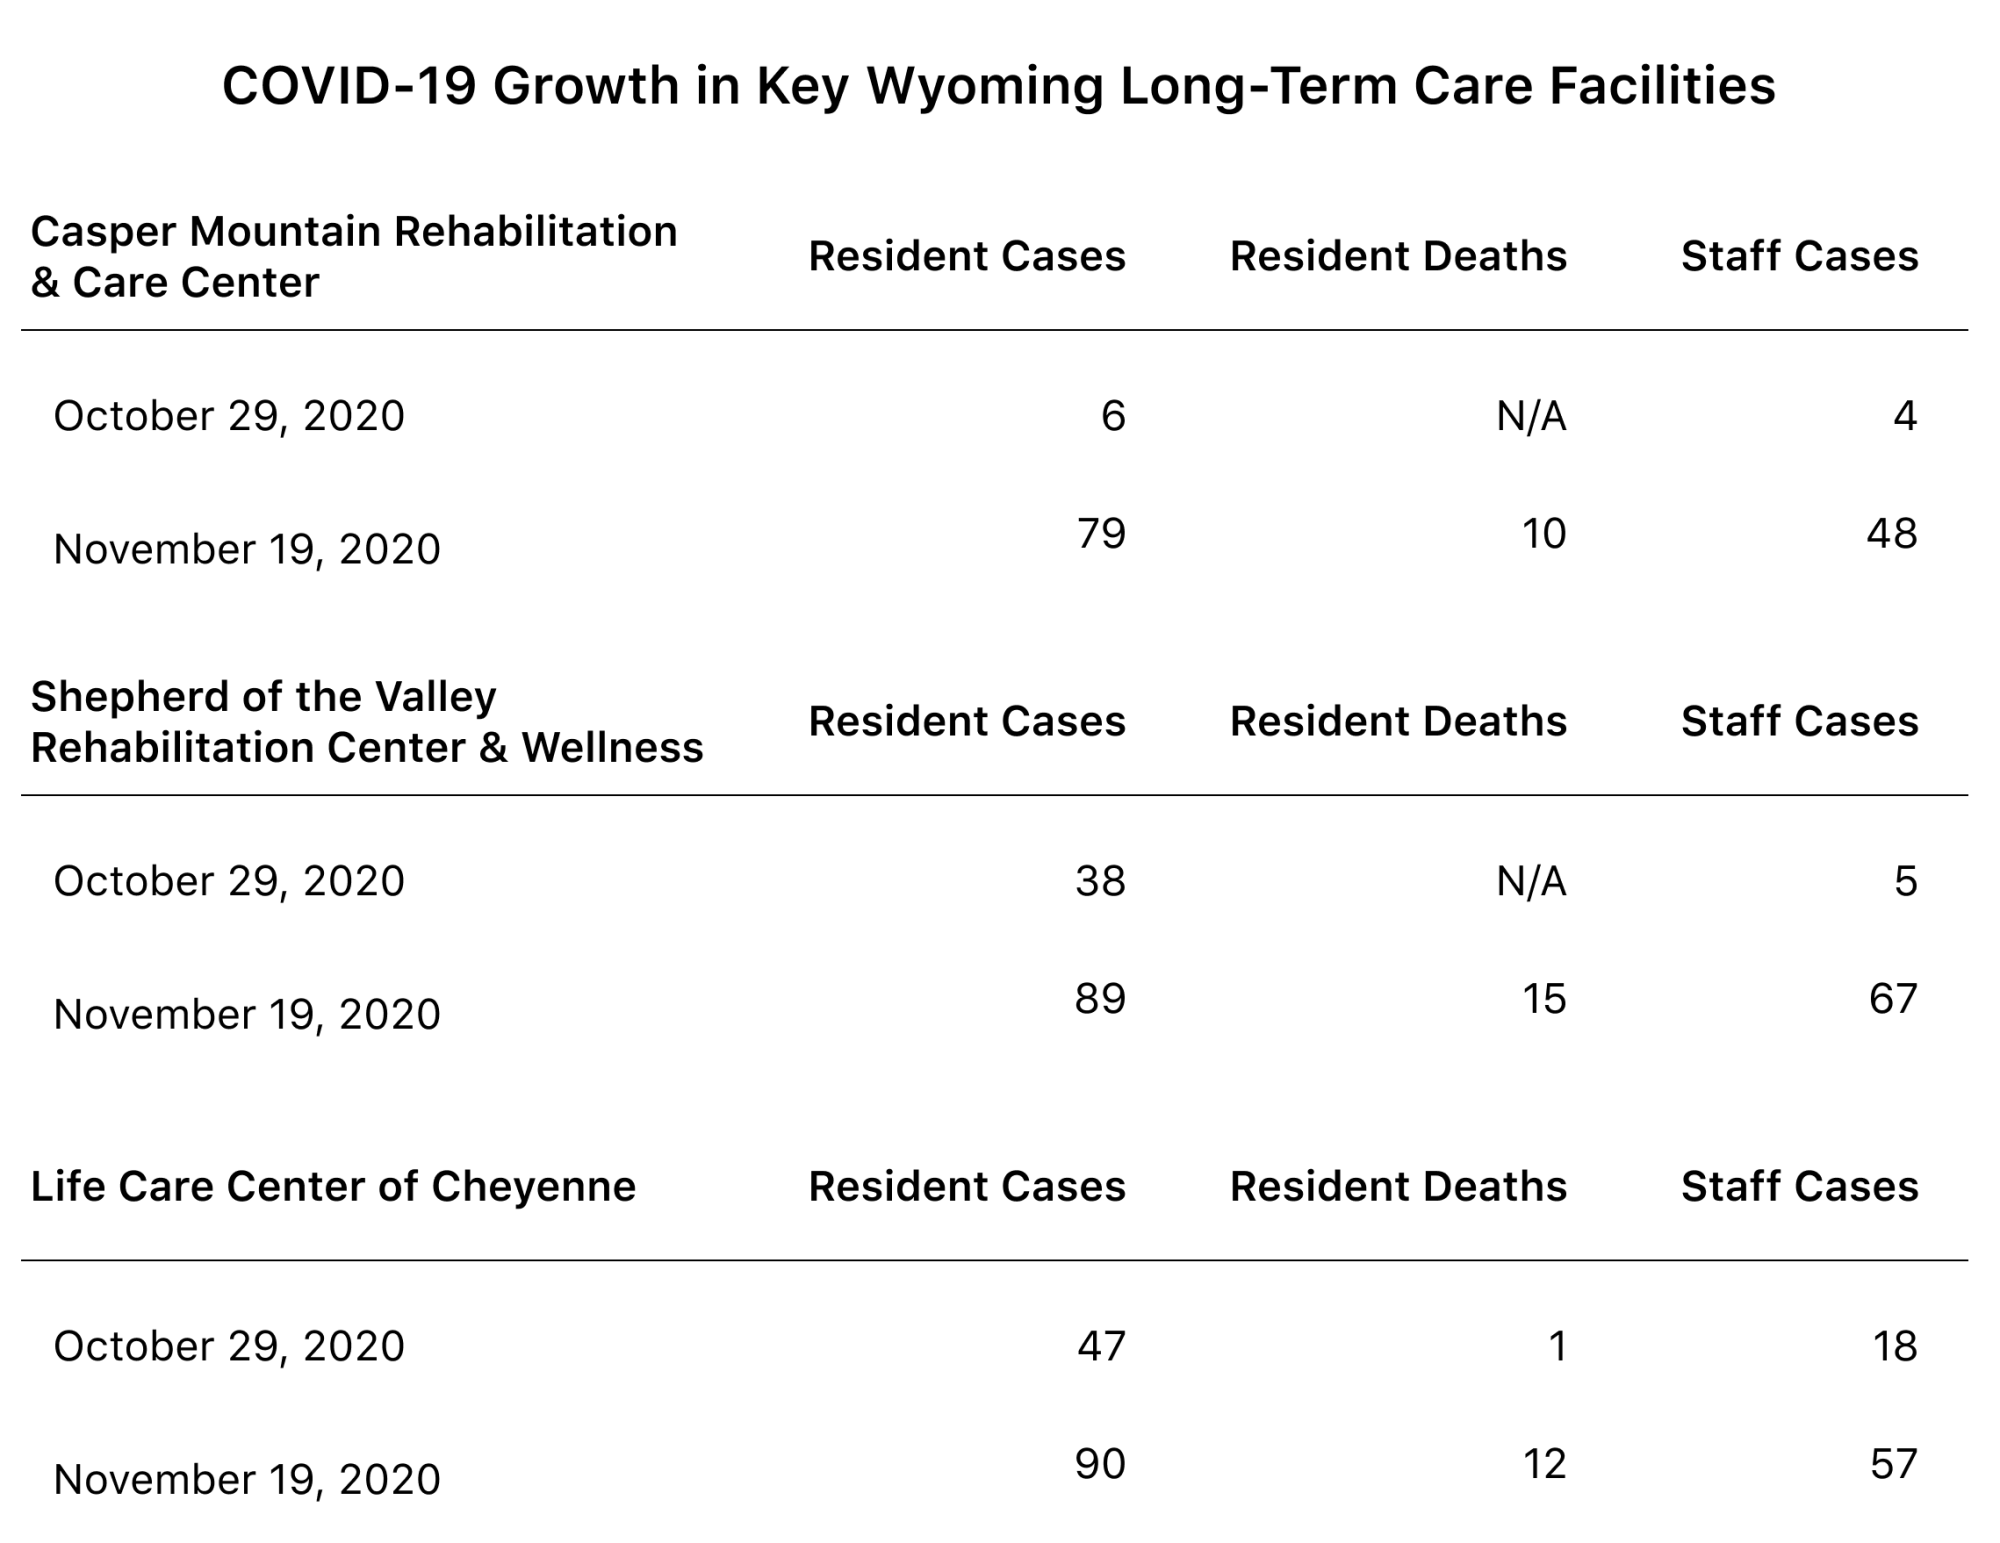 Table showing the growth in COVID-19 cases and deaths in 3 key Wyoming facilities. All three saw sharp increases in both resident cases and resident deaths from October 29 to November 19.